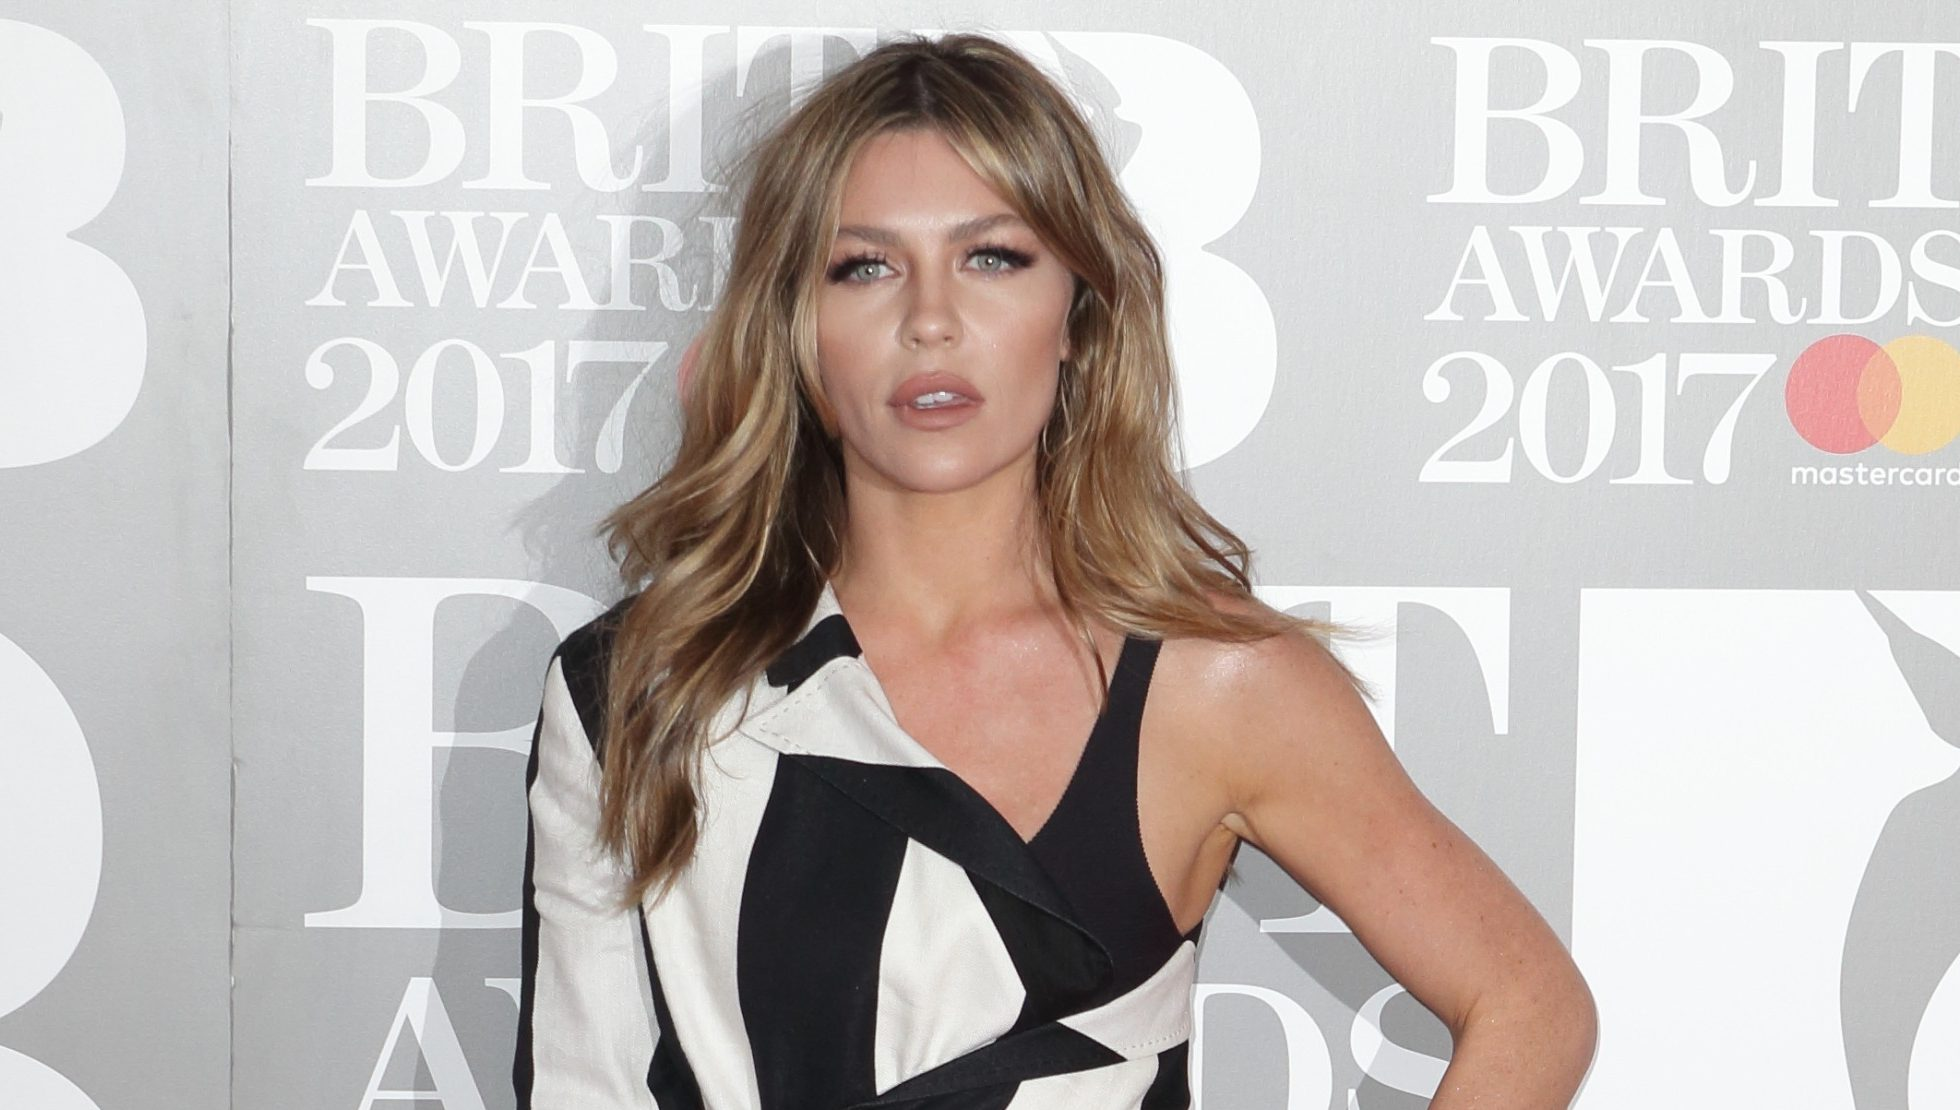 Abbey Clancy shows big changes to her pregnant body in hot Instagram pic